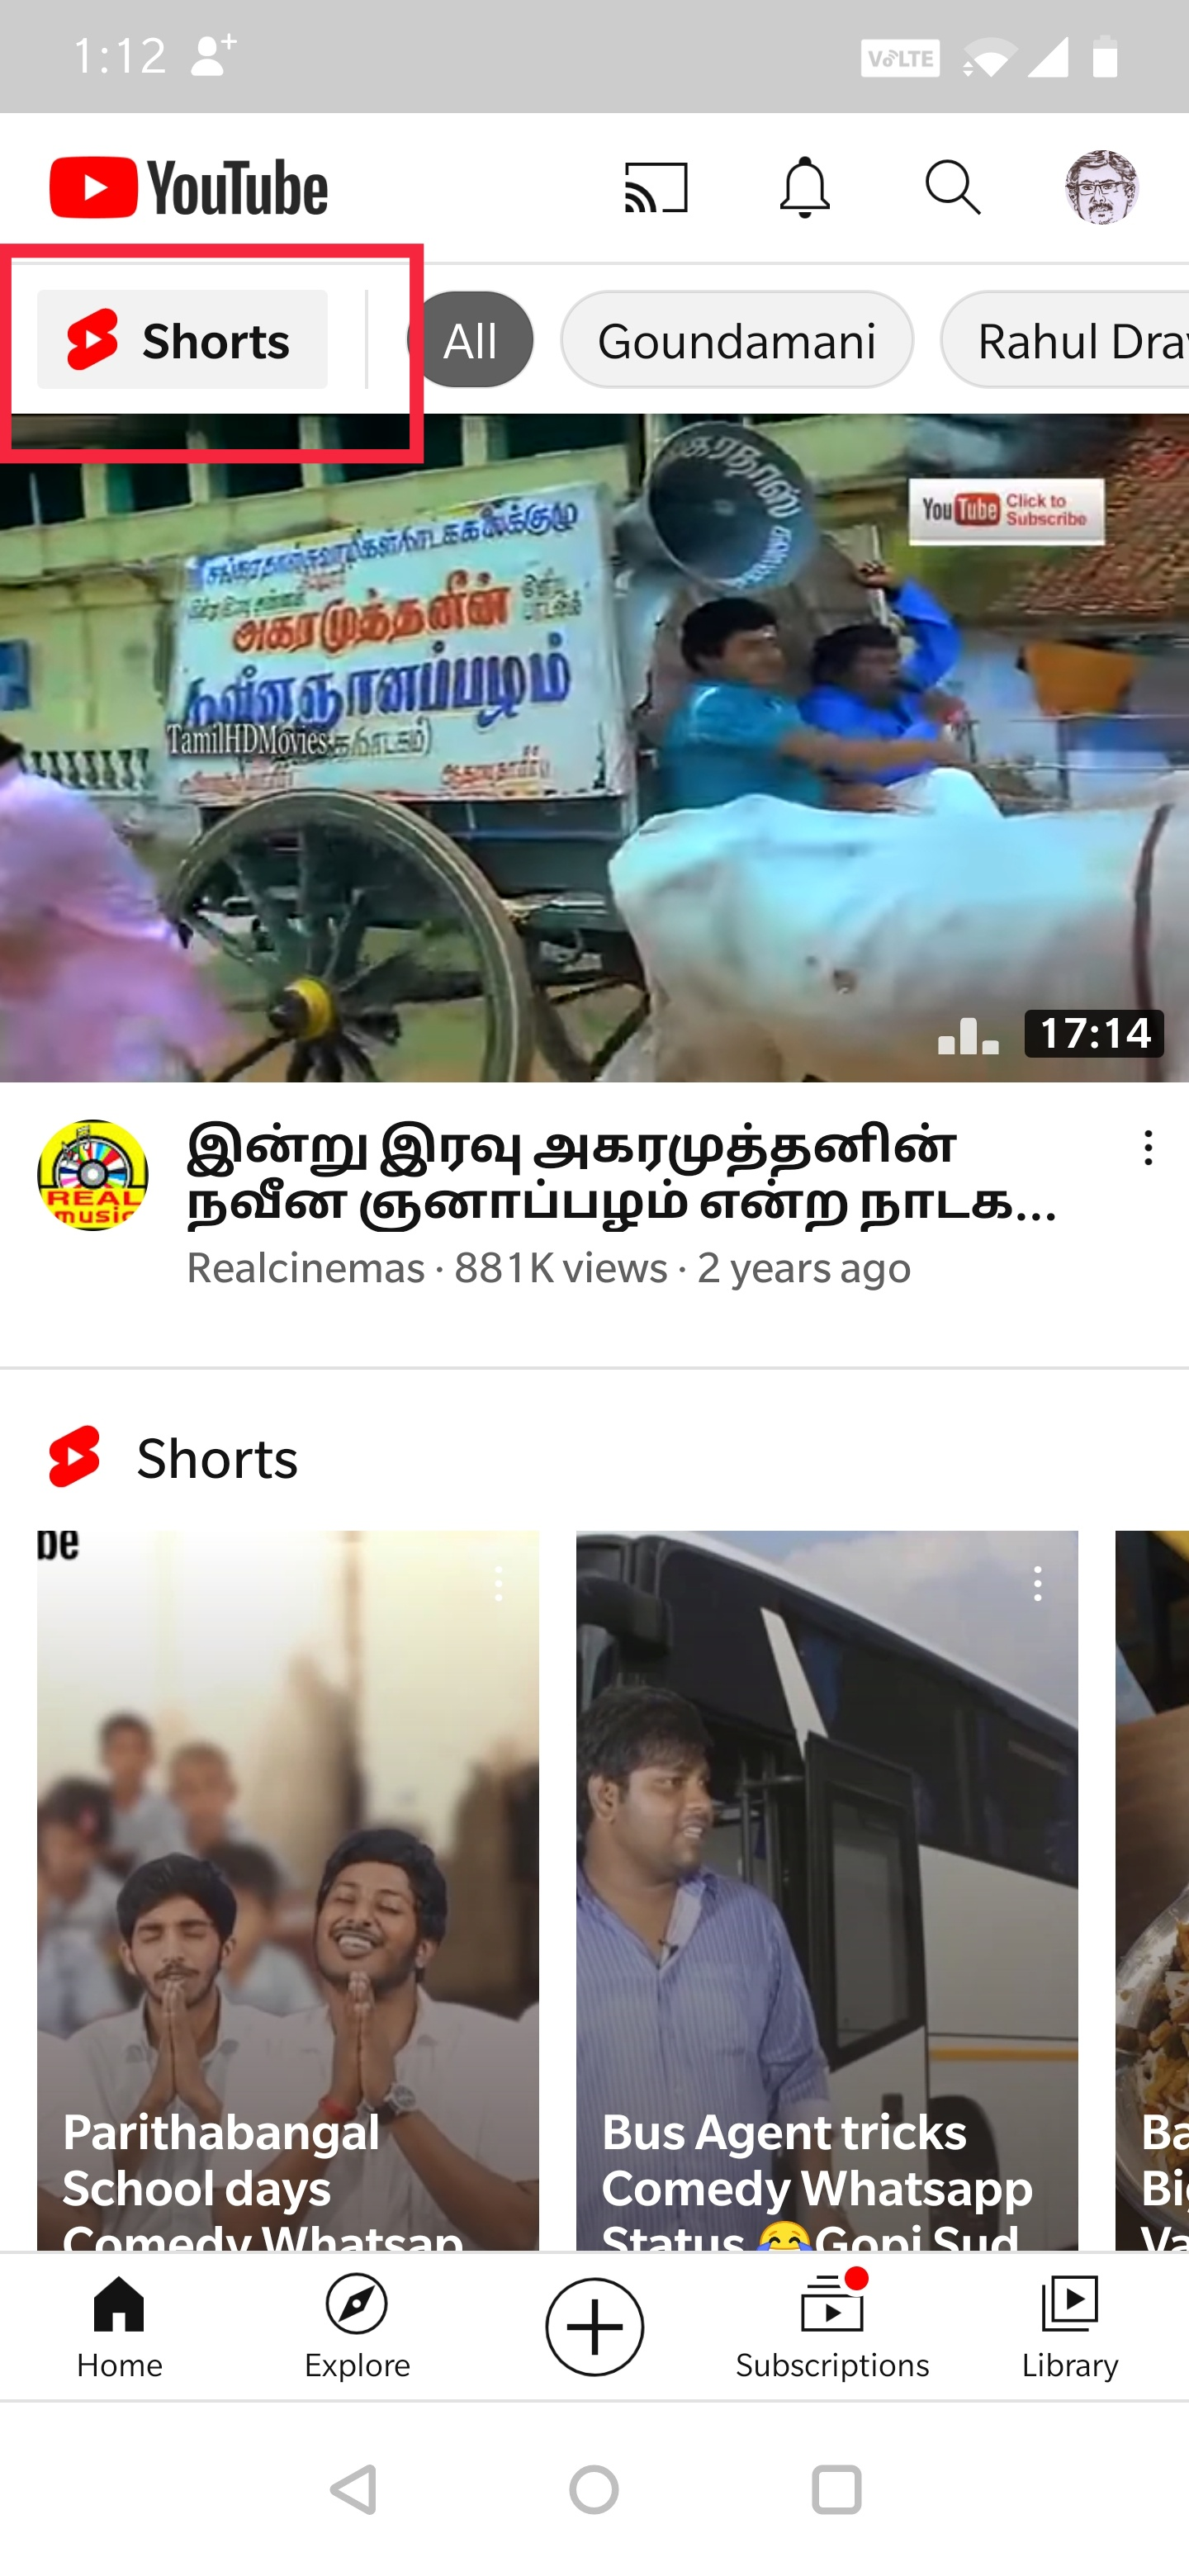 The new YouTube Shorts Button on the app